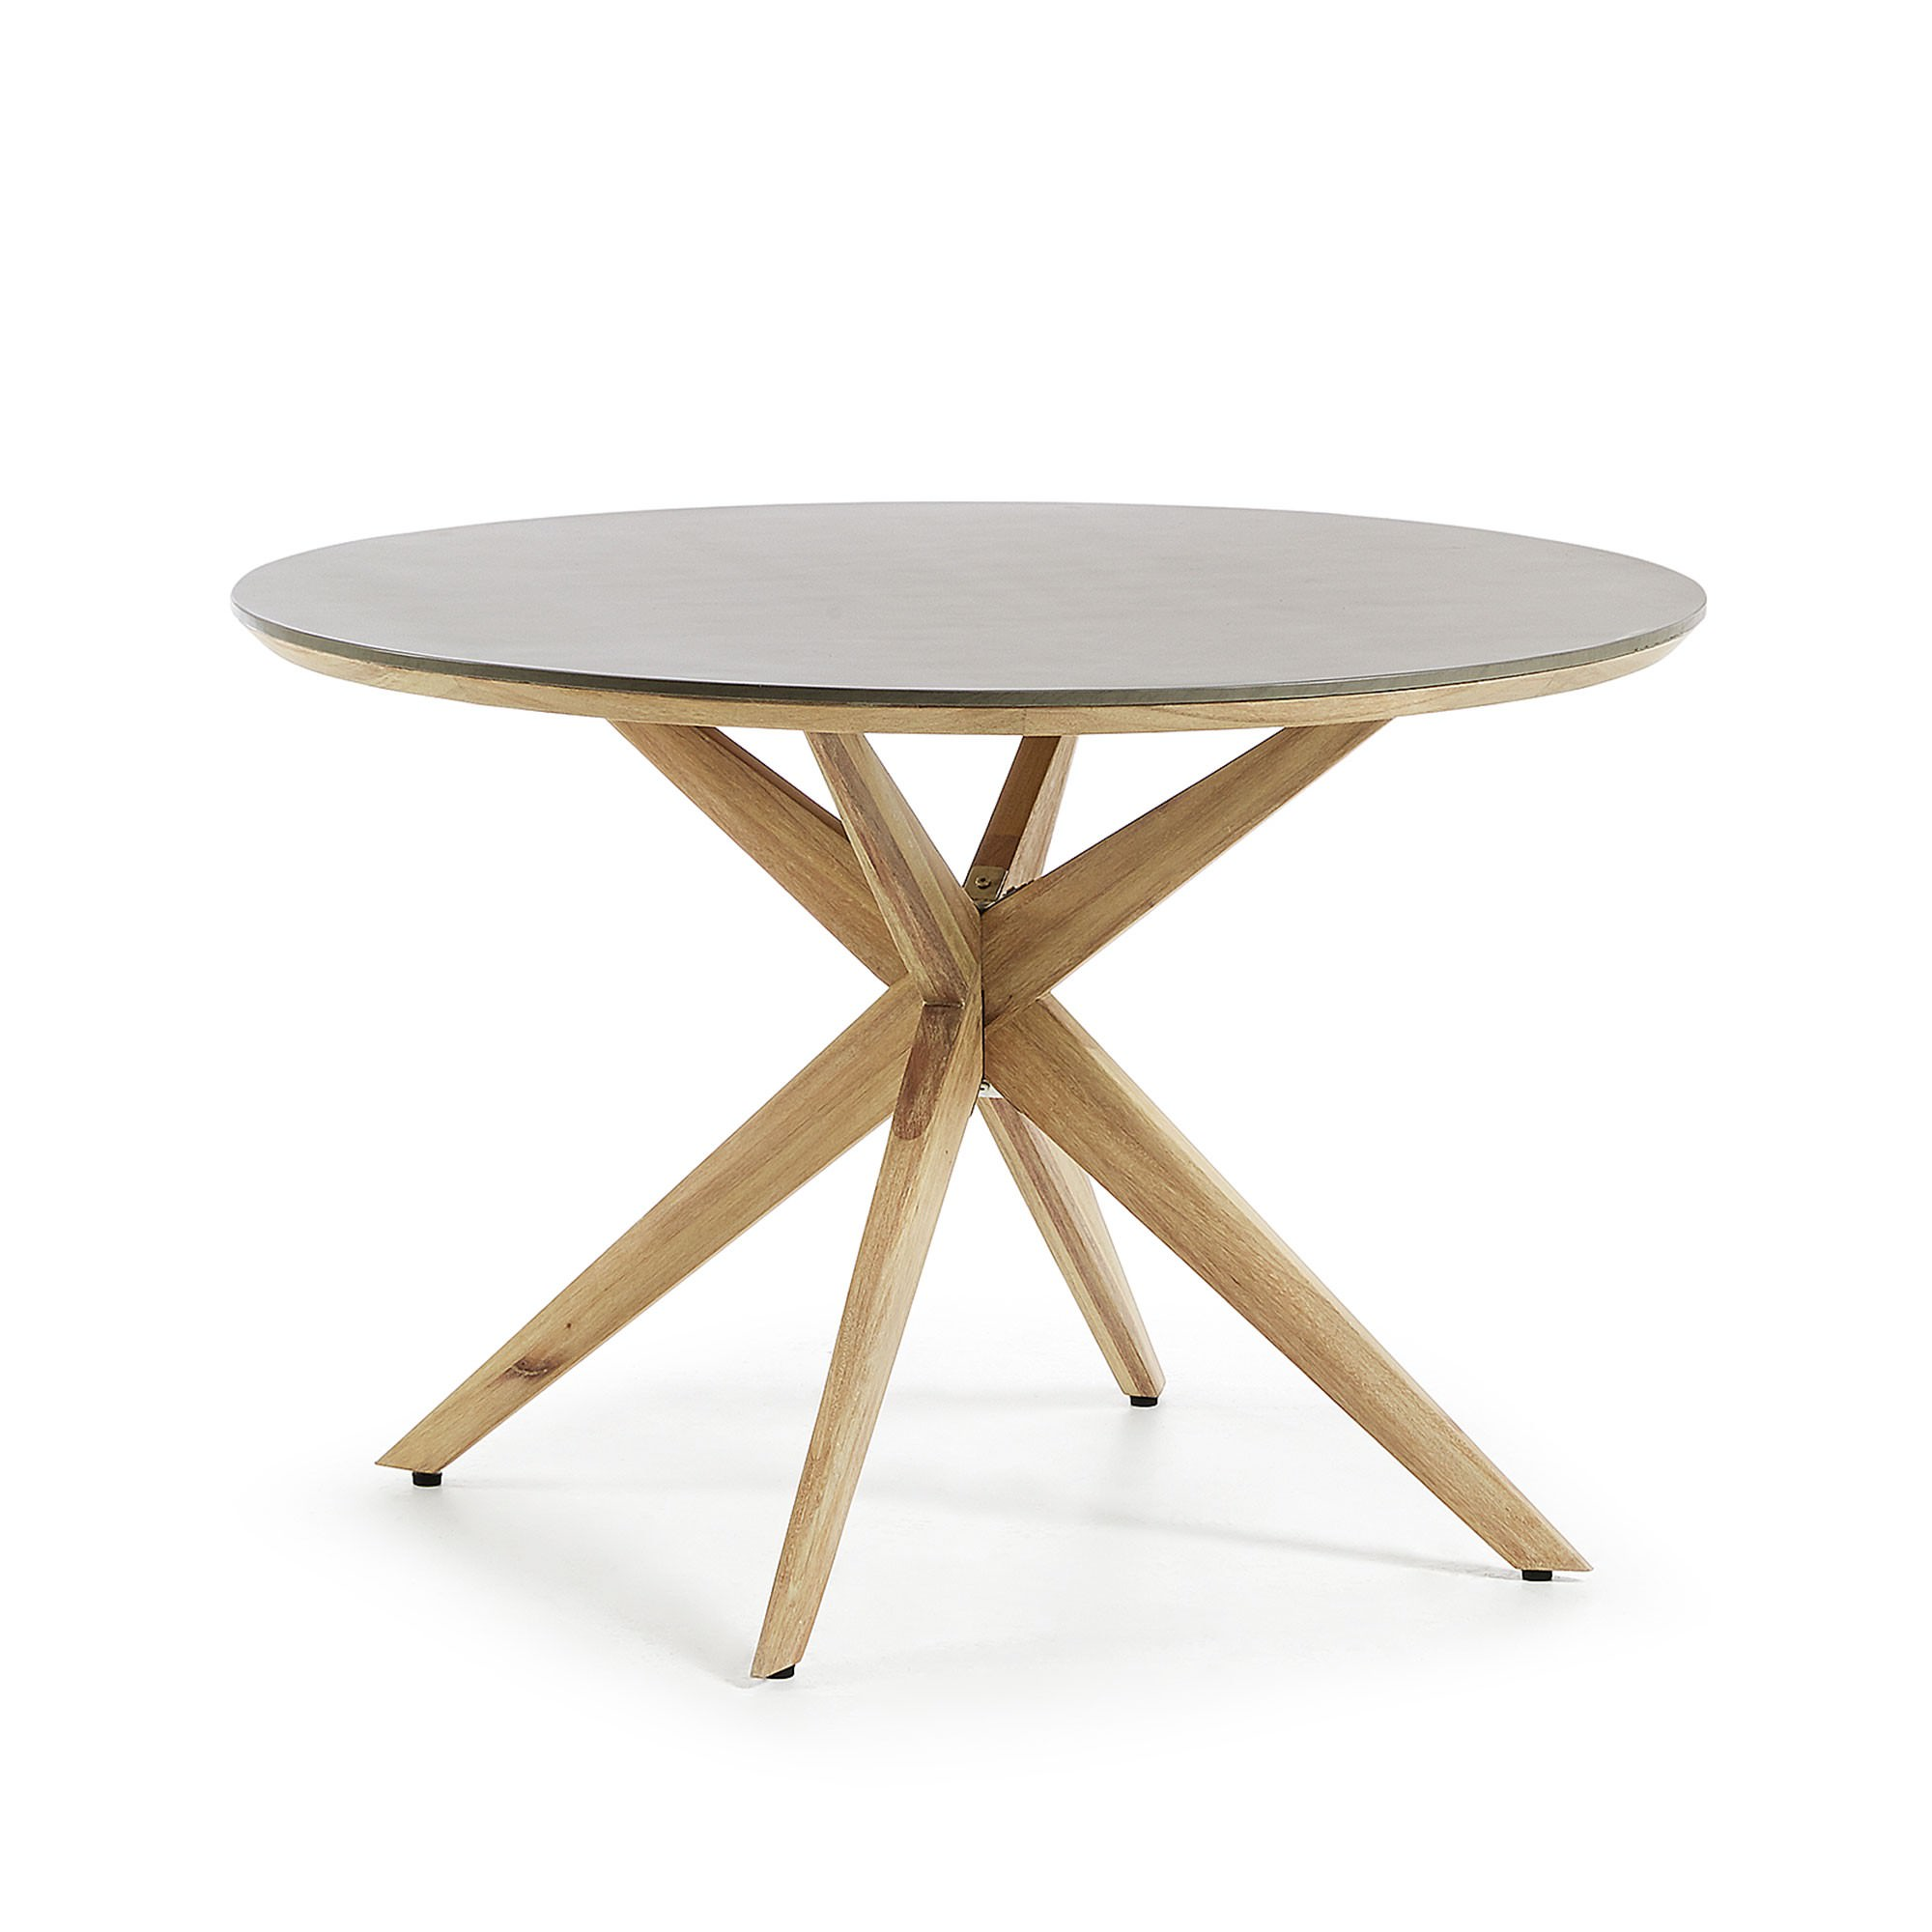 Hastings Poly Cement & Eucalyptus Indoor / Outdoor Round Dining Table, 120cm